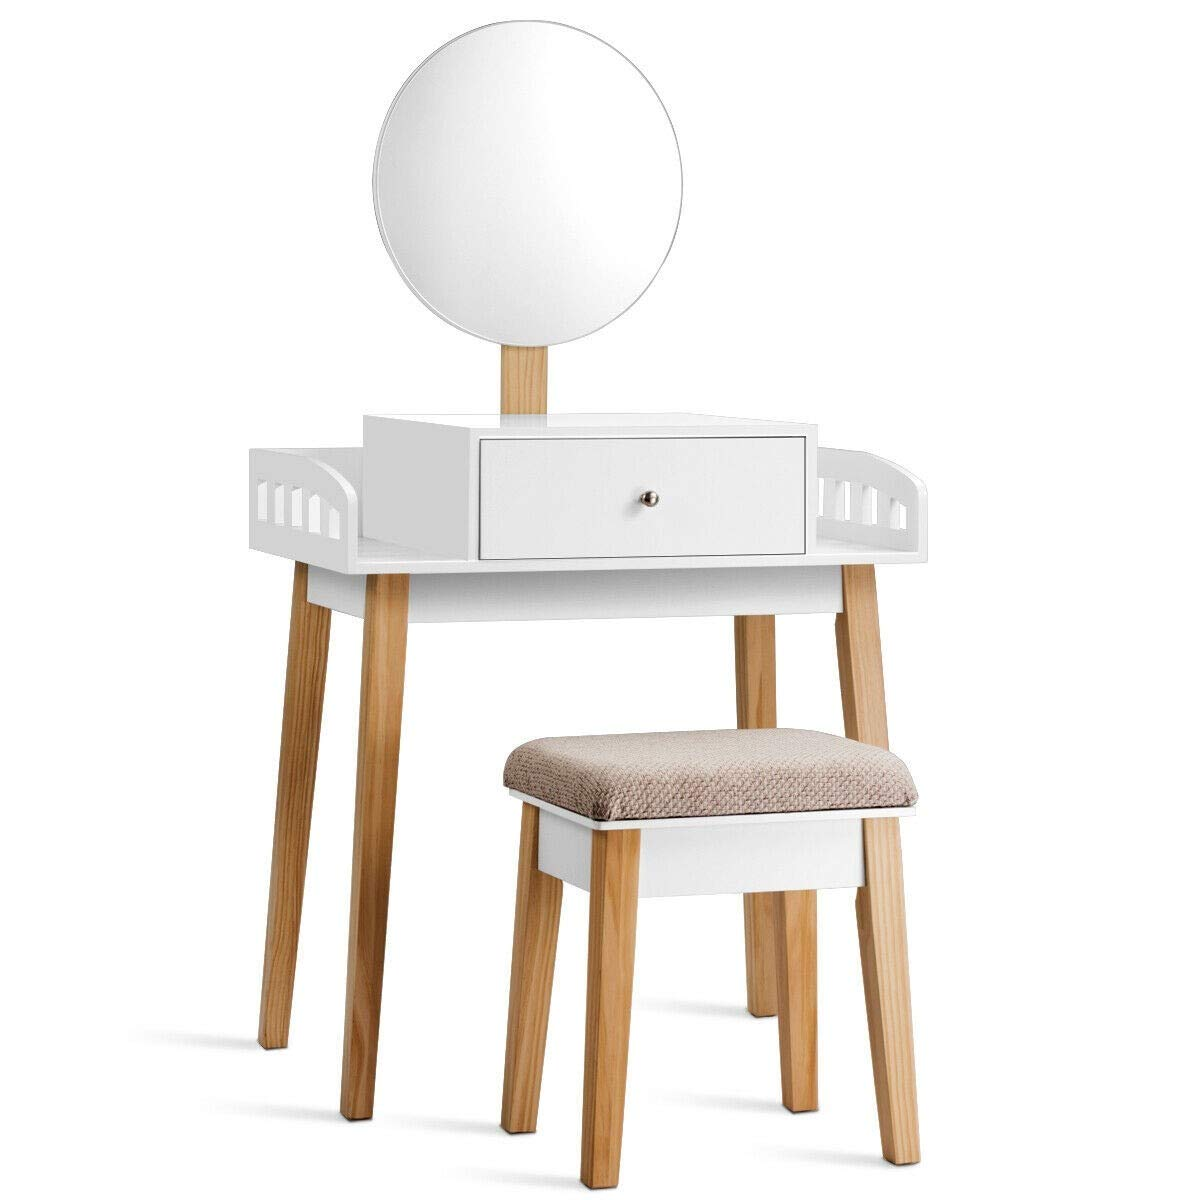 USA_Best_Seller Modern Luxury Nice Compact Wooden Makeup Dressing Mirror Table Set with 1 Drawer Durable Bedroom Nice Luxury